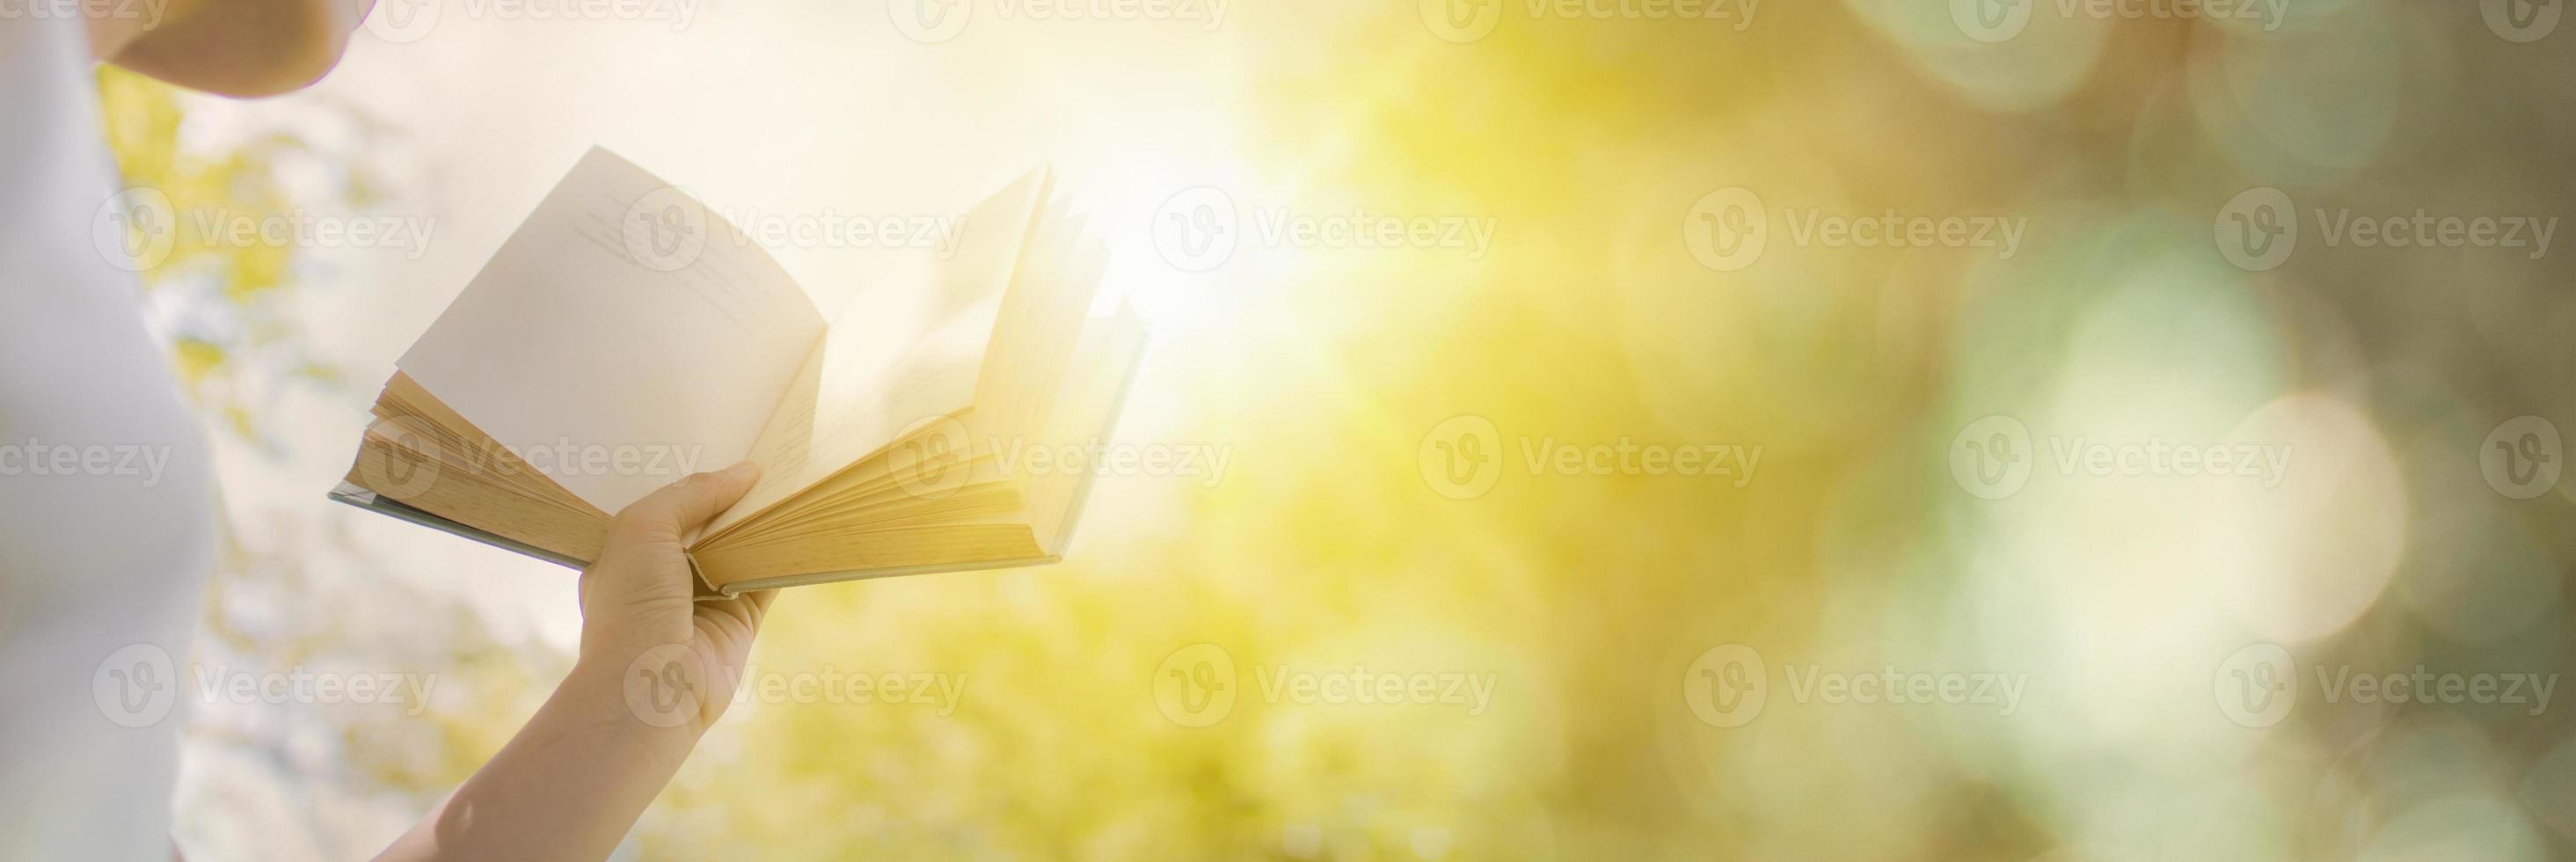 Person holding book opening with sunshine photo